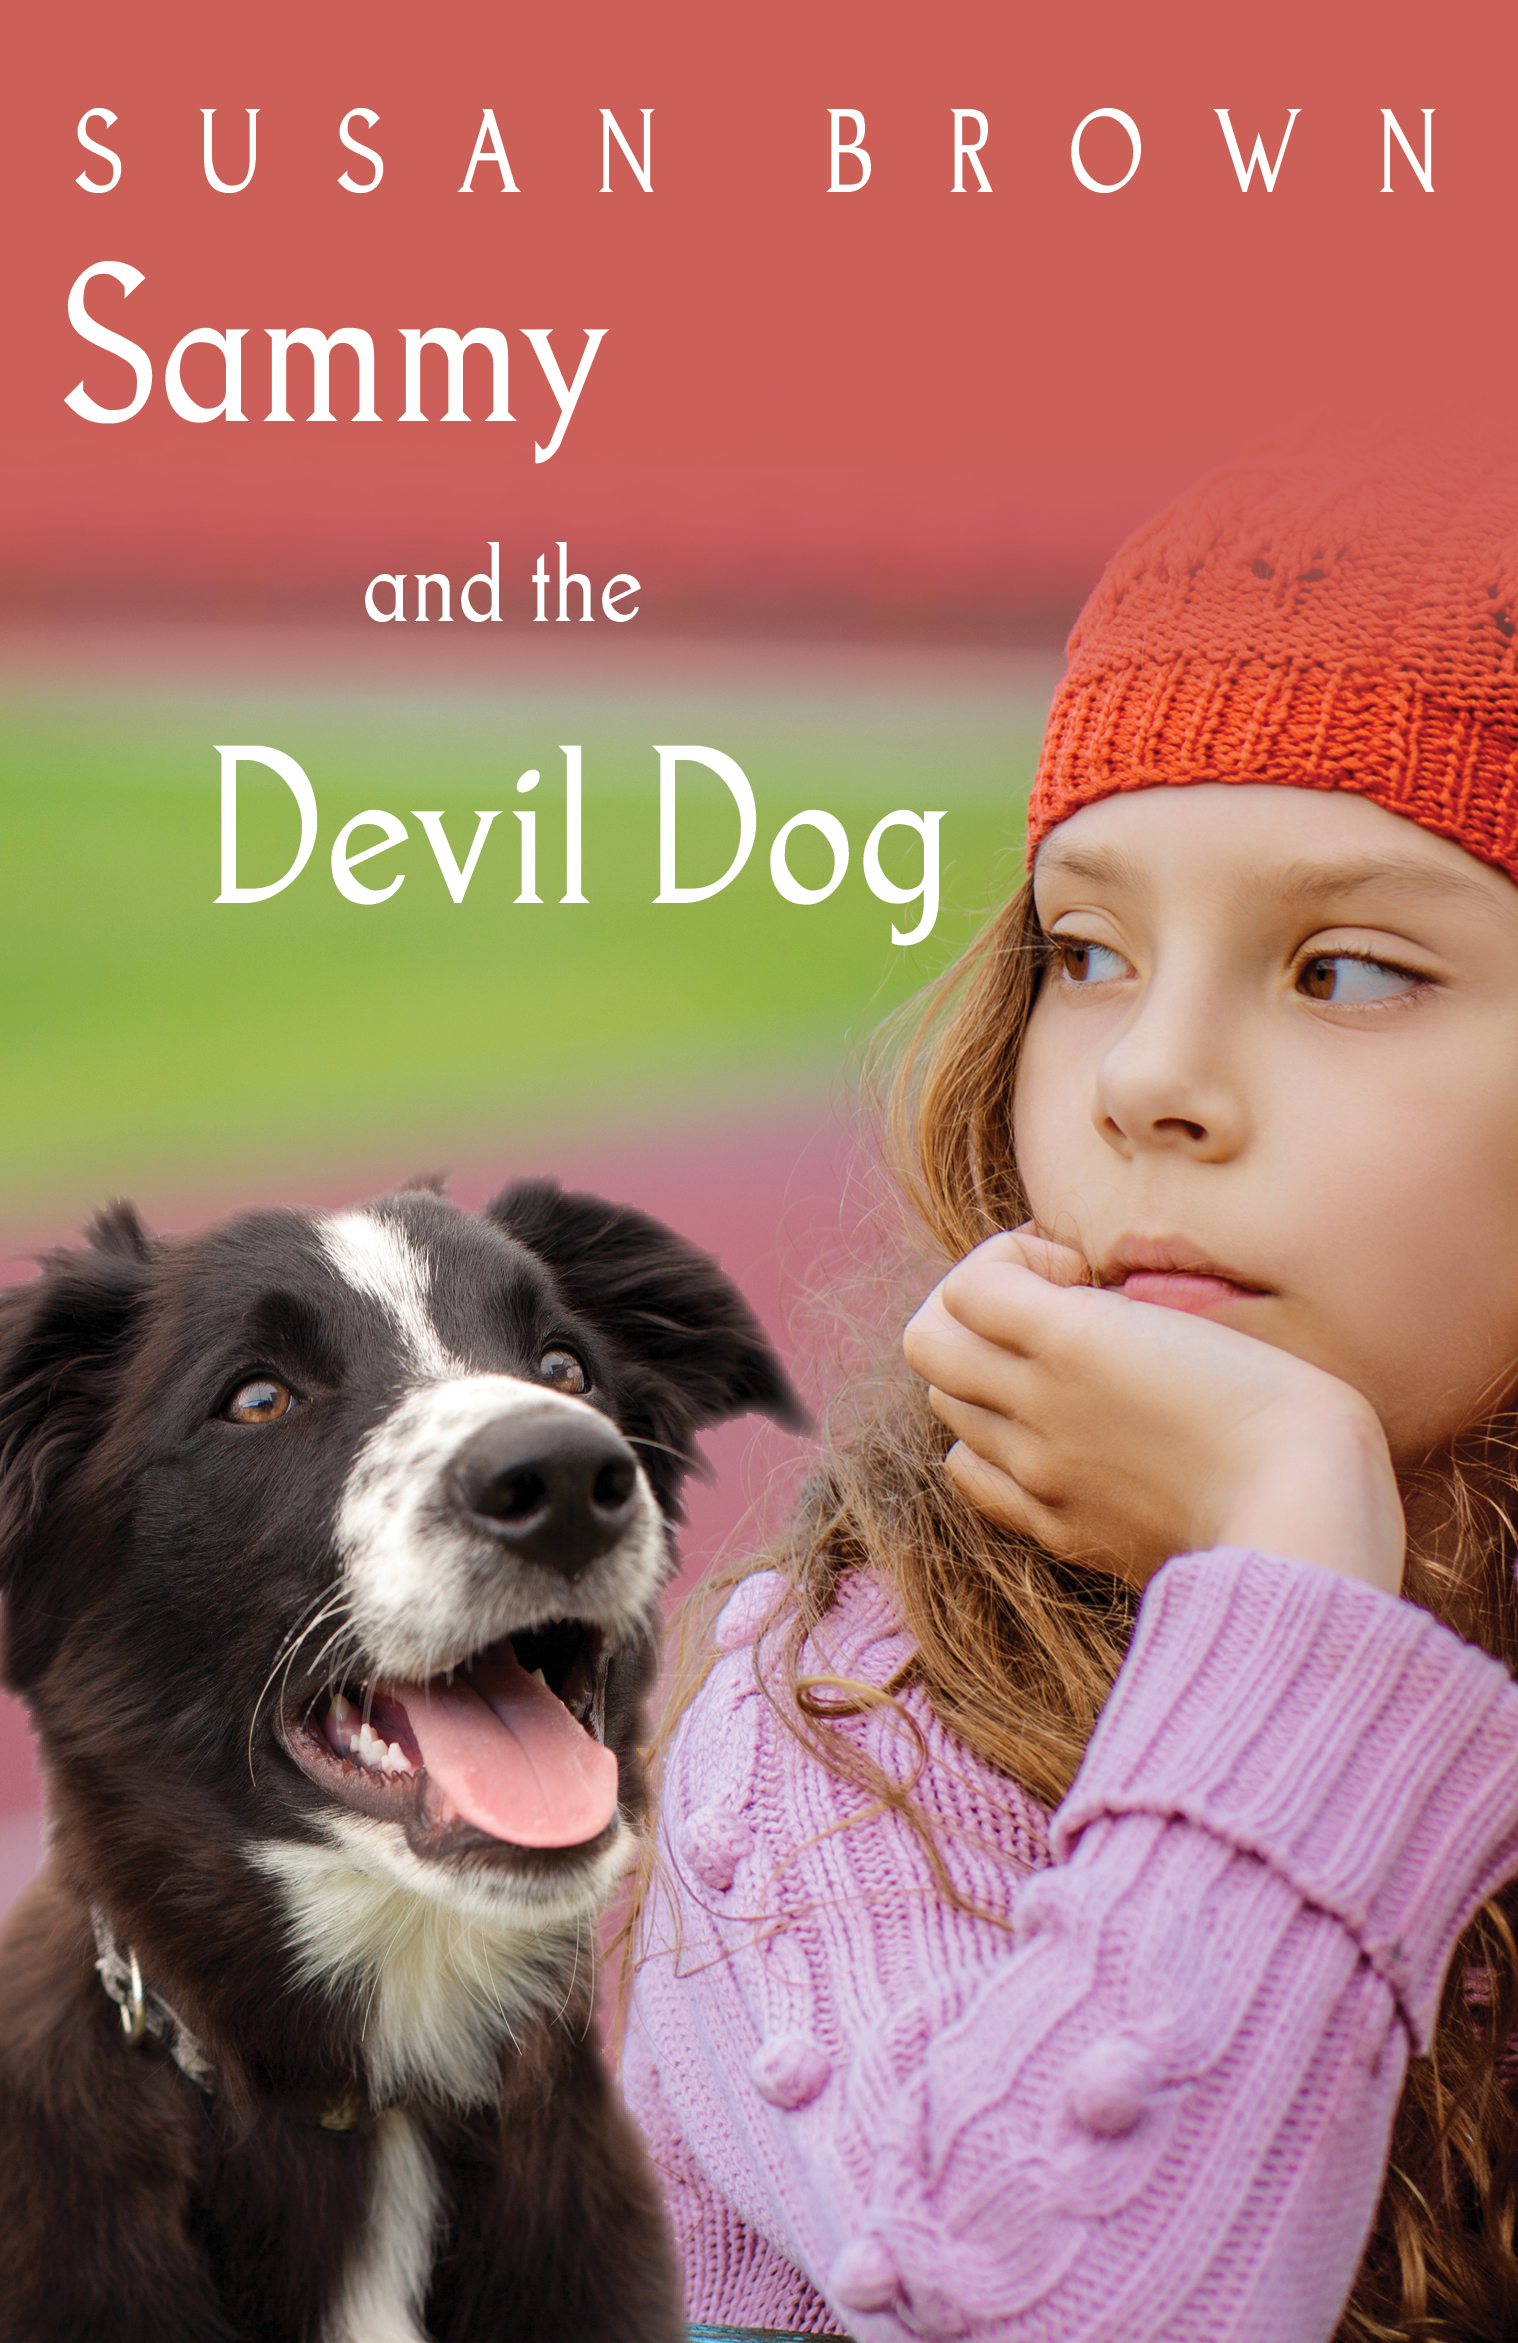 Sammy and the Devil Dog by Susan Brown